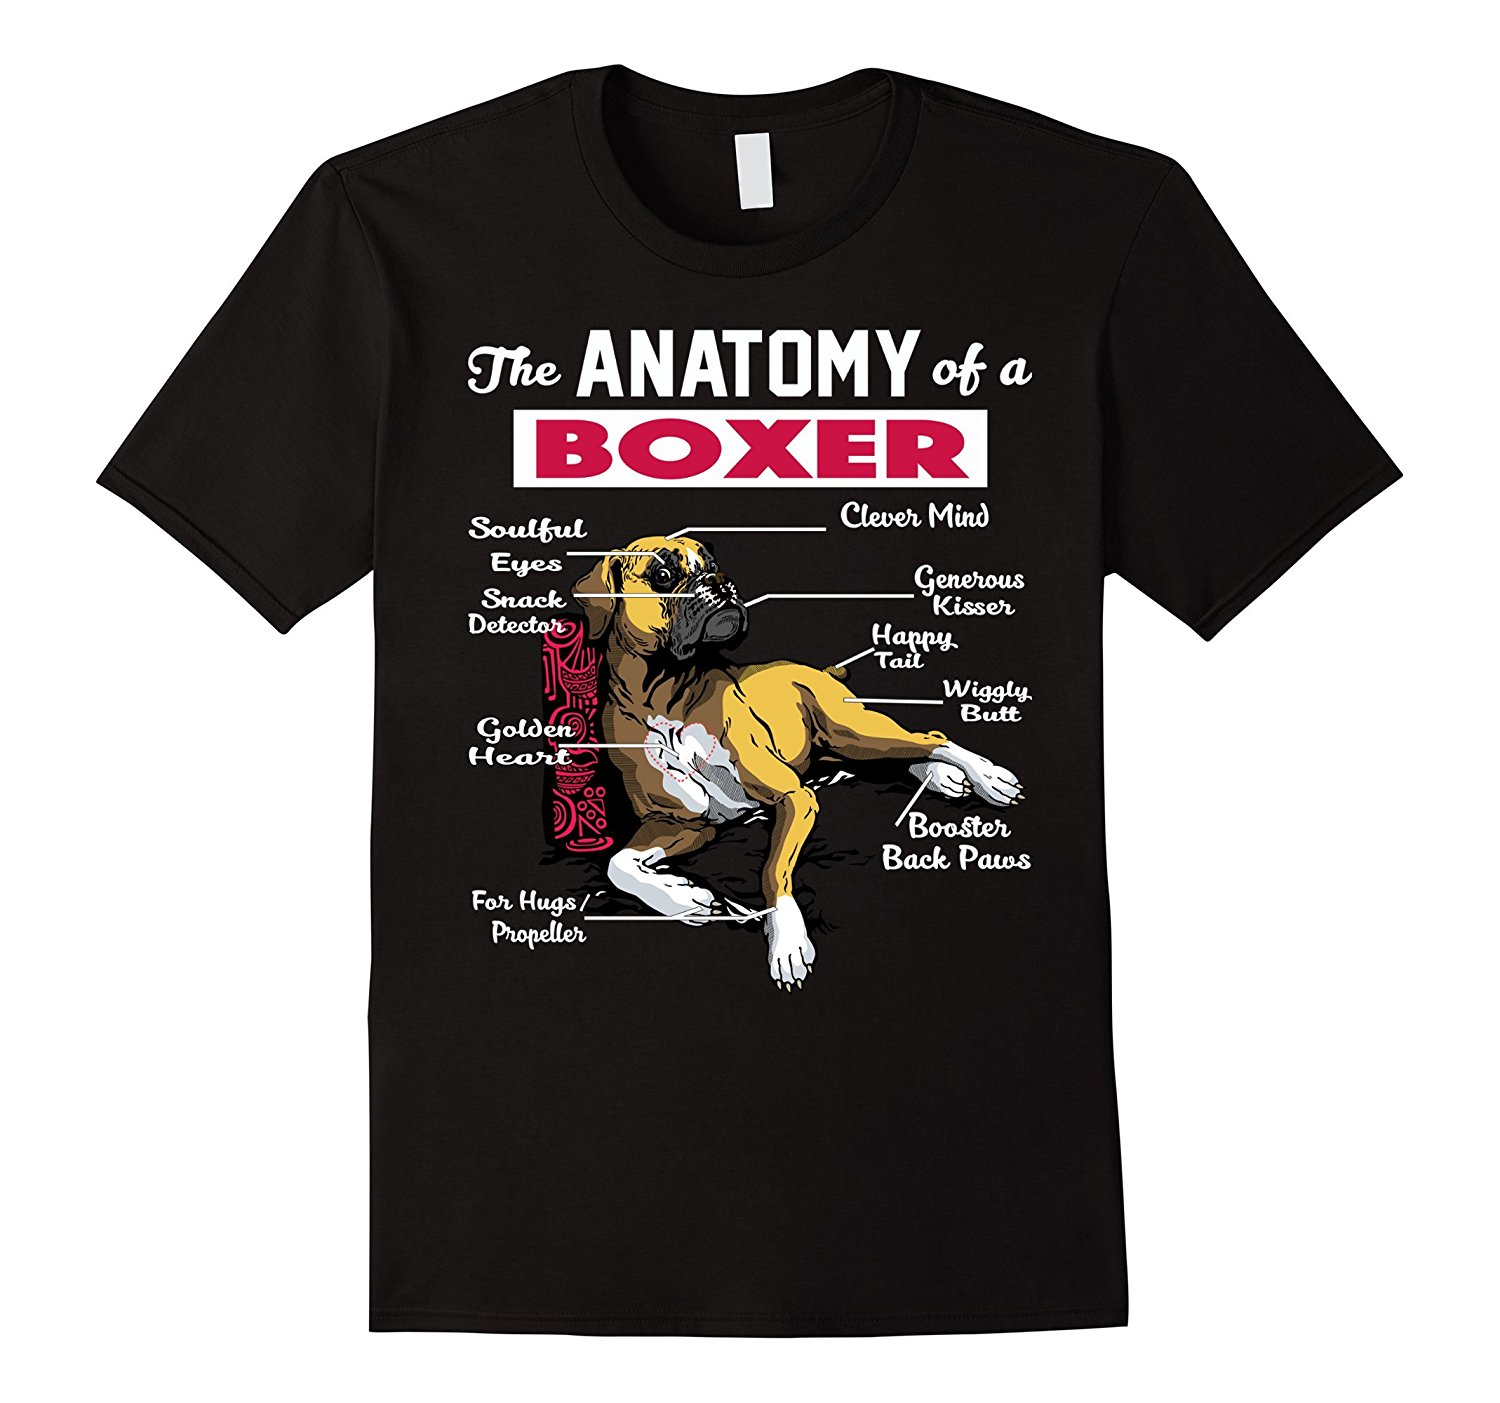 36a4d51fa8c6 Anatomy of A Boxer Dog Shirt - Funny T Shirt for Boxer Lover Brand Clothes  Summer 2018 New Men Cotton T-Shirt